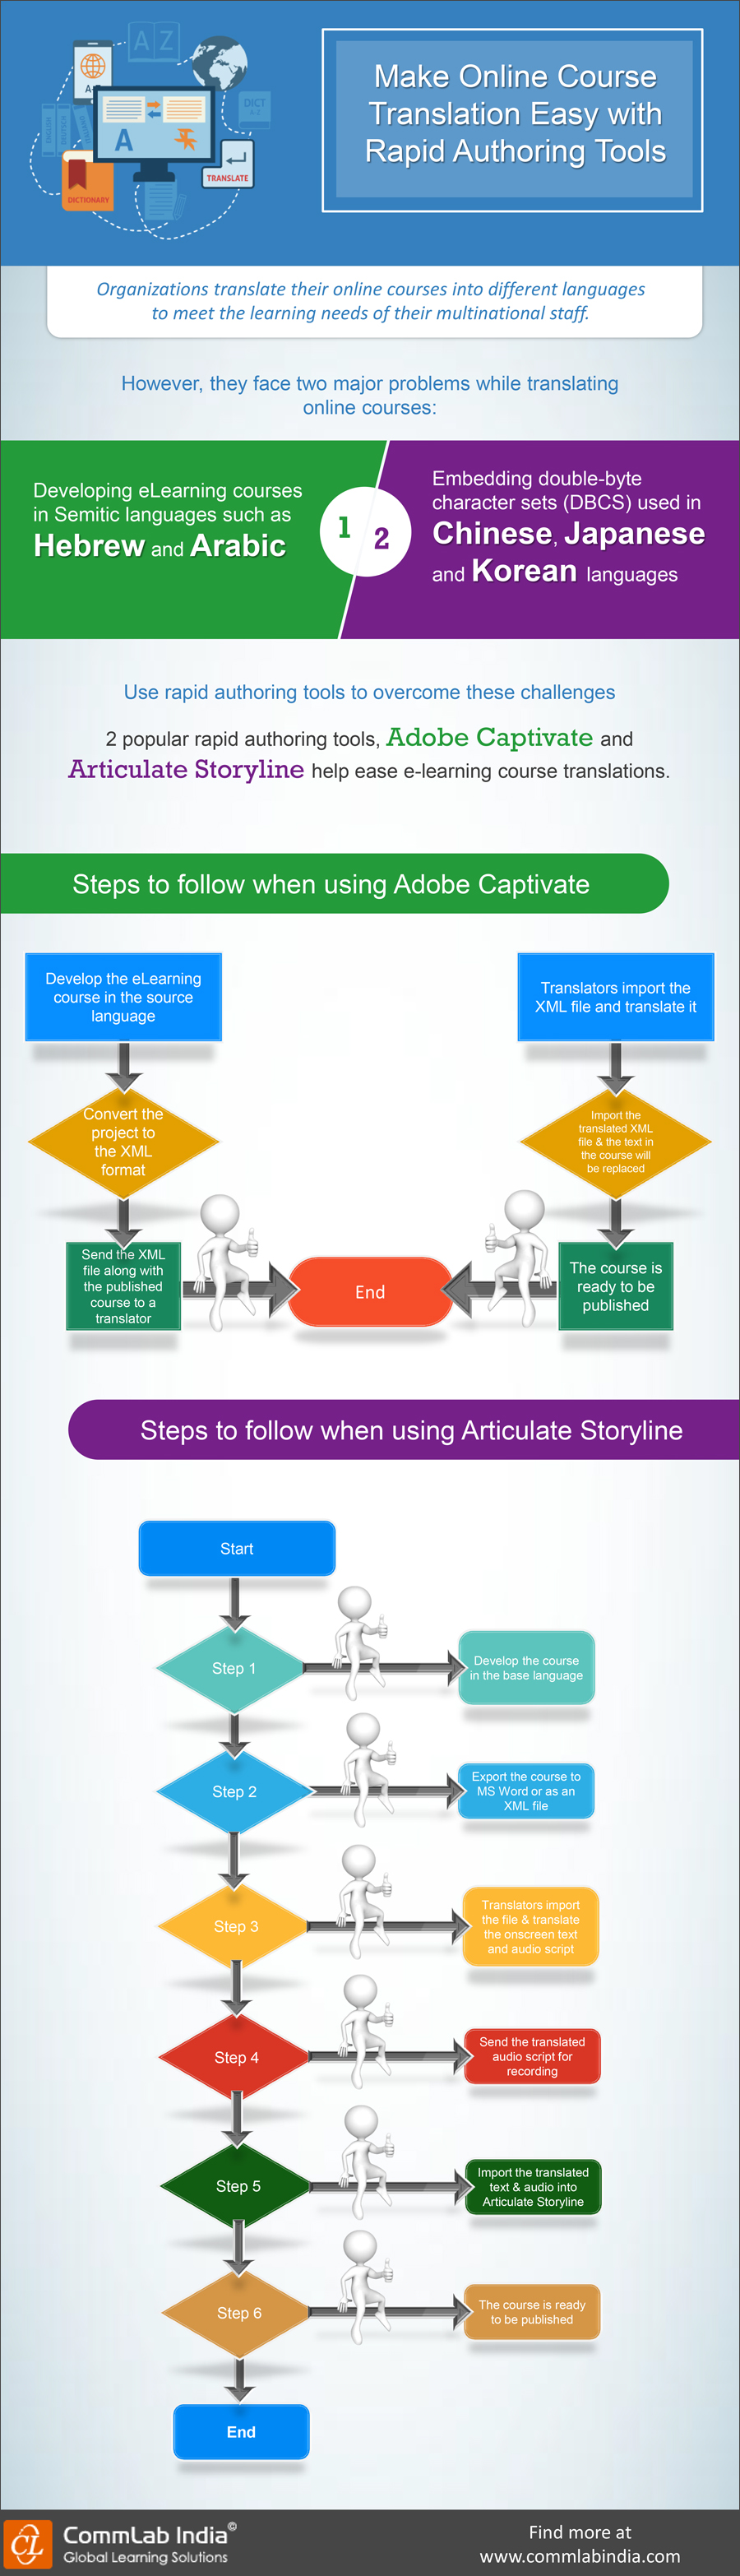 Make Online Course Translation Easy with Rapid Authoring Tools [Infographic]